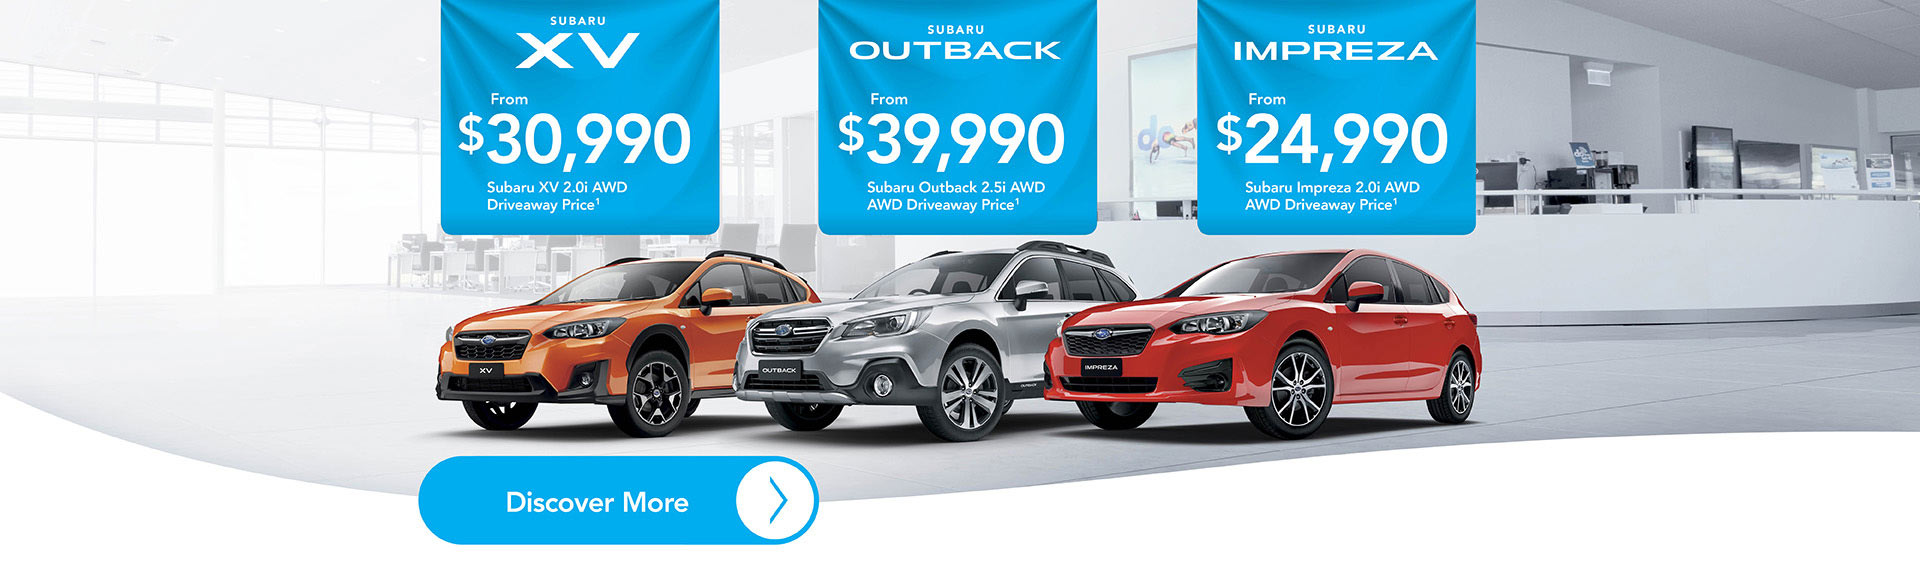 Subaru Dealer Latest Offers